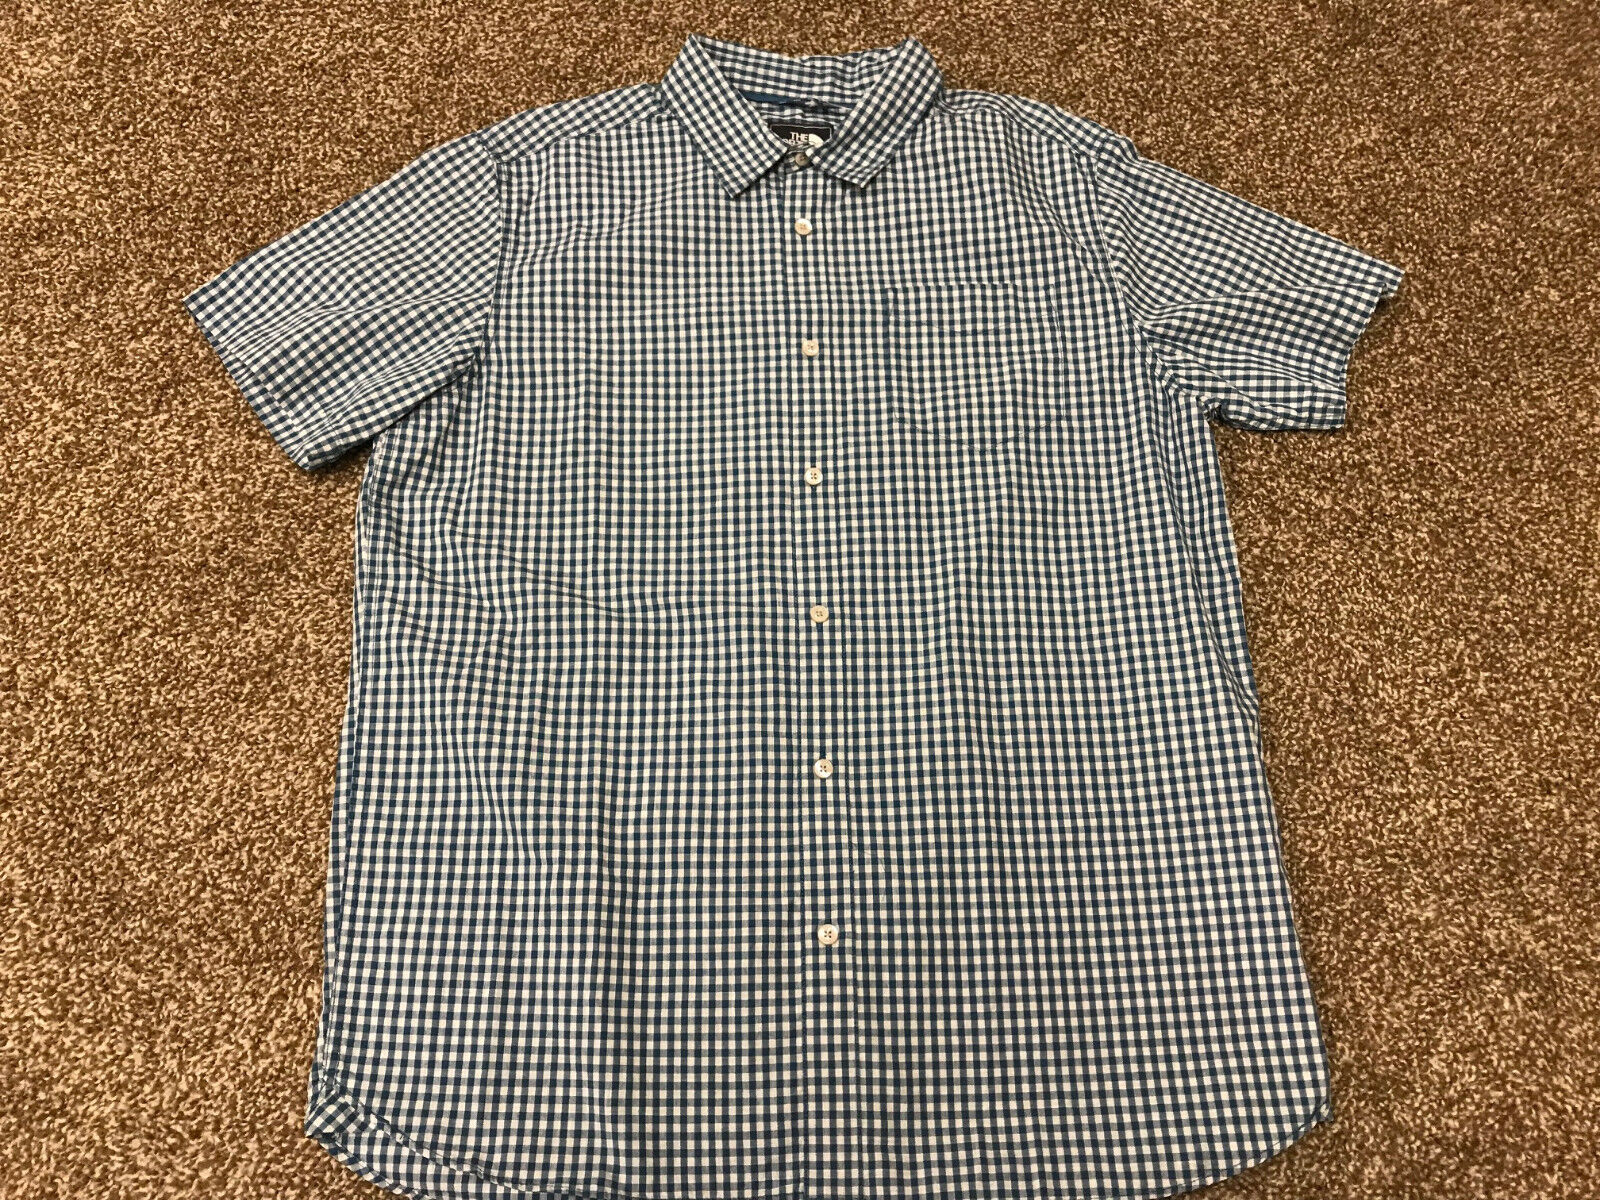 New NWT Men's The North Face Shadow Gingham Short Sleeve Shirt Size Large